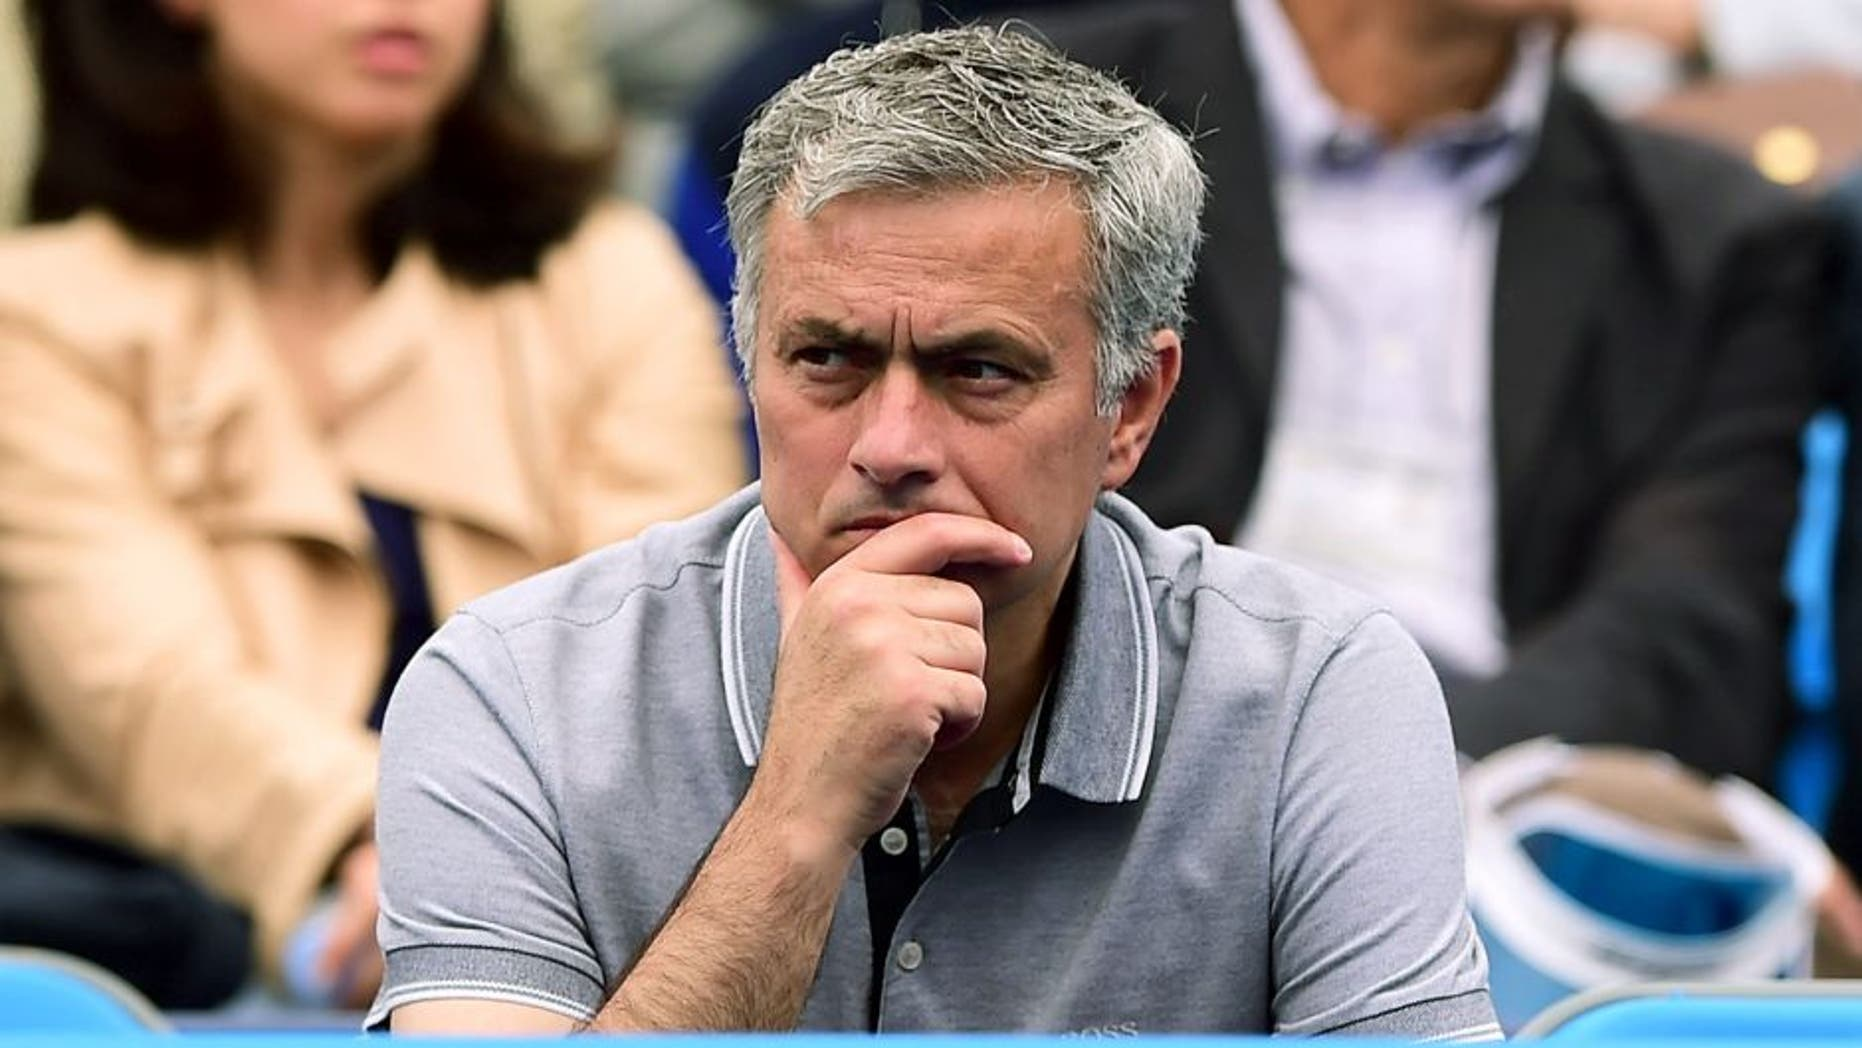 LONDON, ENGLAND - JUNE 20: Chelsea manager Jose Mourinho watches the match between Kevin Anderson of South Africa and Gilles Simon of France during day six of the Aegon Championships at Queen's Club on June 20, 2015 in London, England. (Photo by Shaun Botterill/Getty Images)